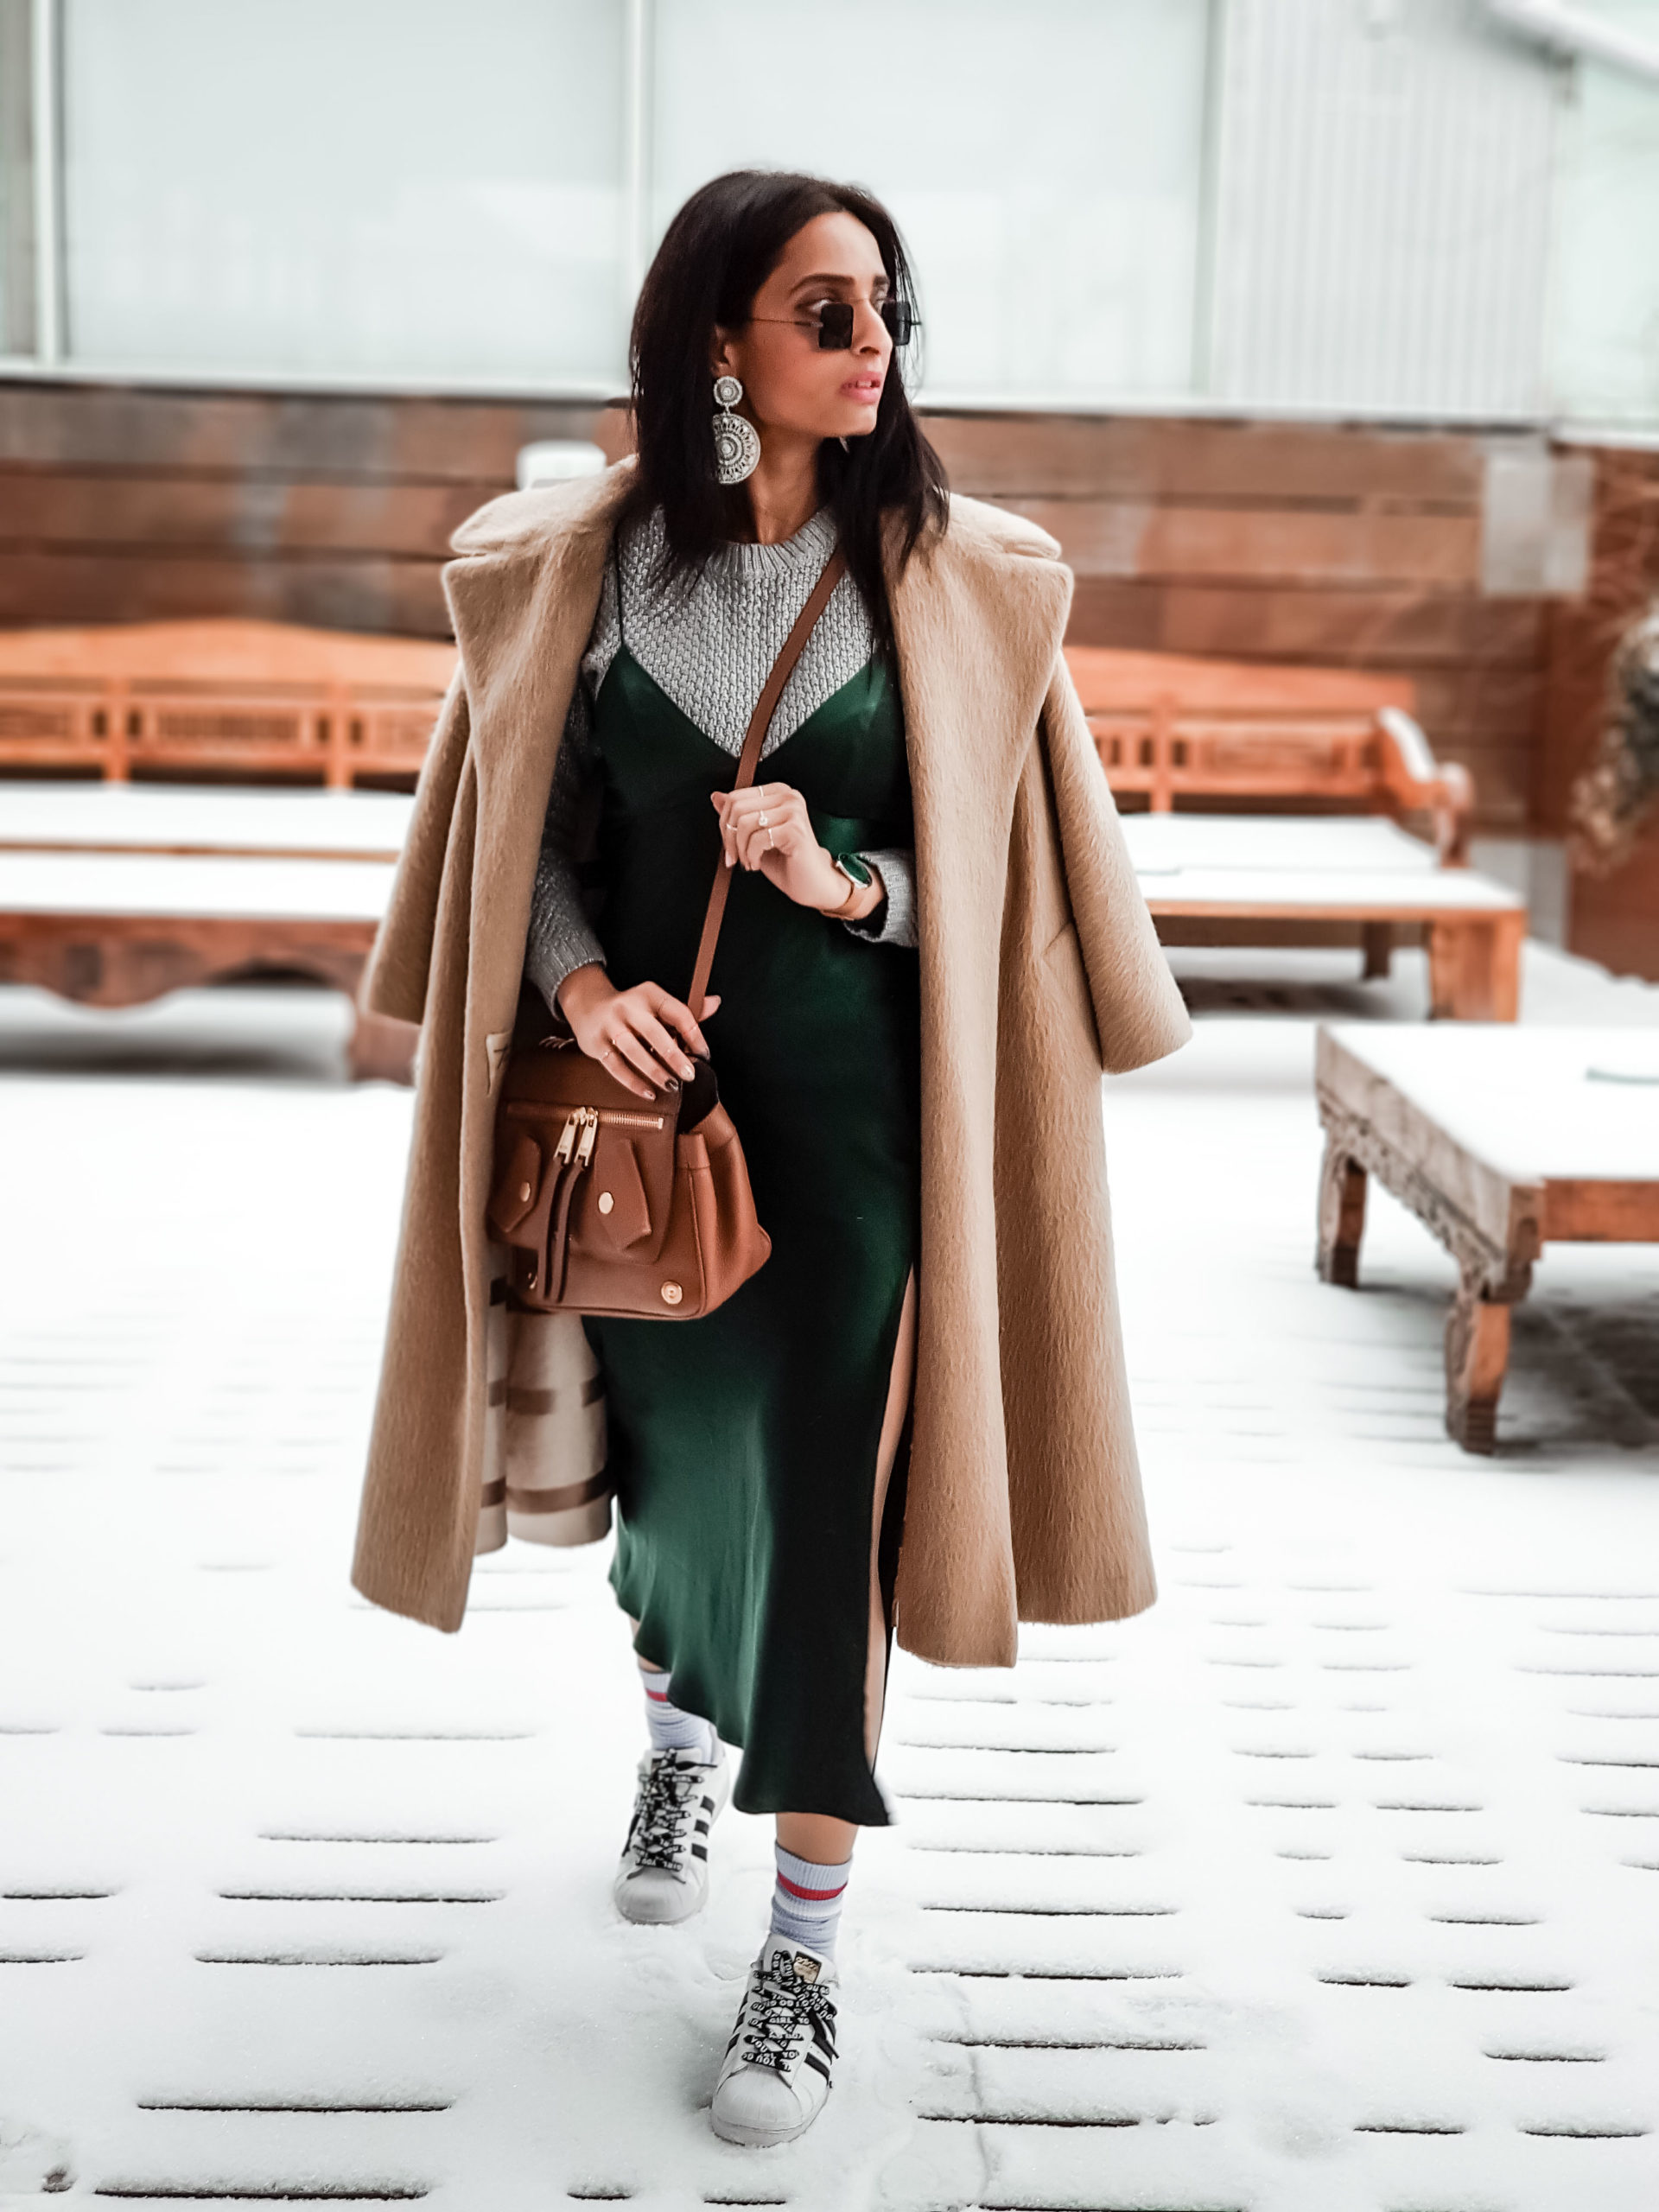 girl fashion blogger wearing green satin camisole dress with sneakers and blue socks and nude coloured coat outfit for streetstyle at new york fashion week 2019